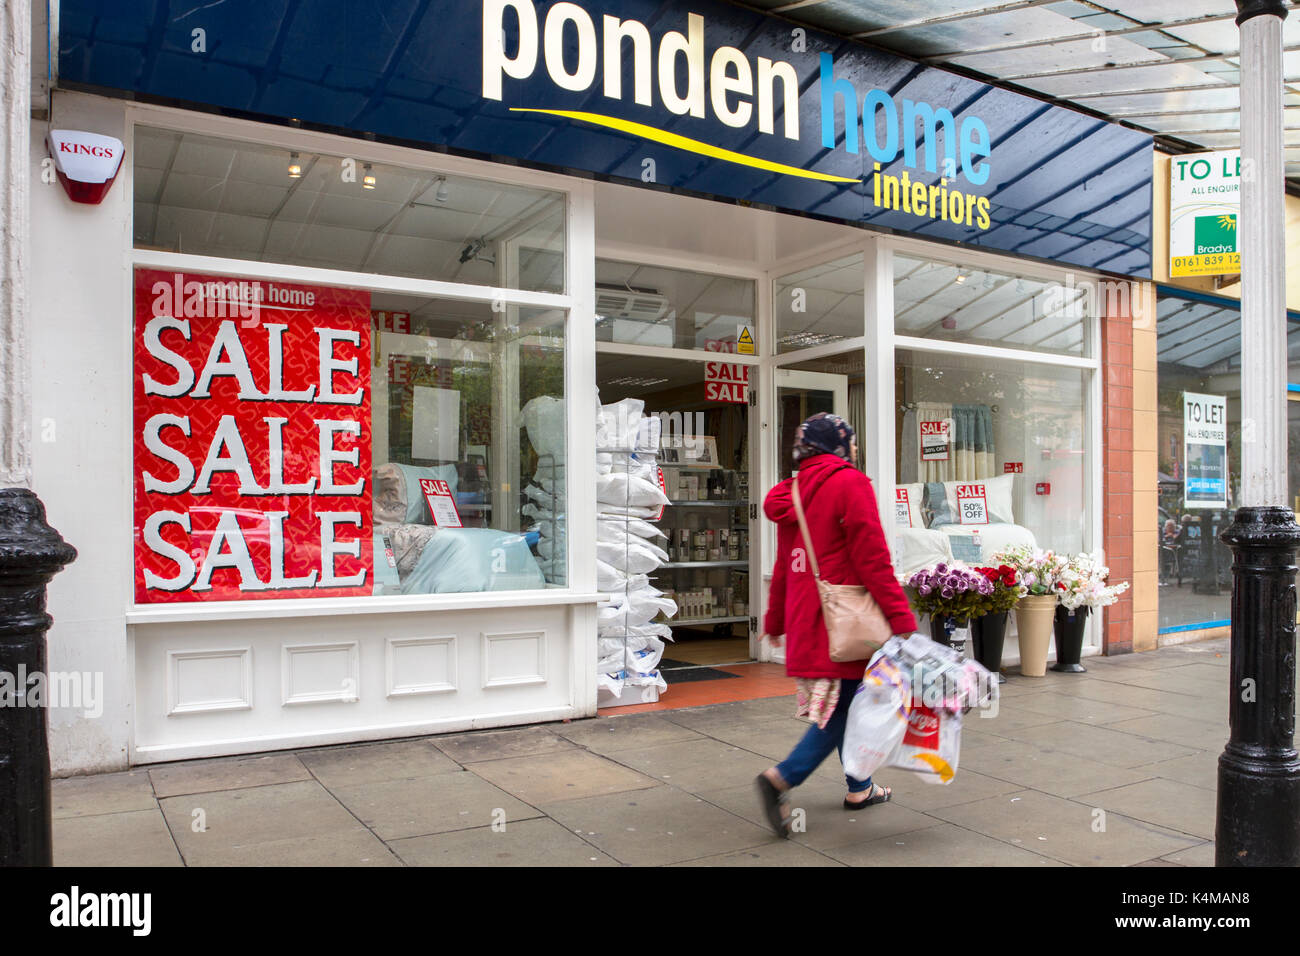 Gentil Ponden Home Interiors Summer Sales In Lord Street, Southport, Merseyside, UK